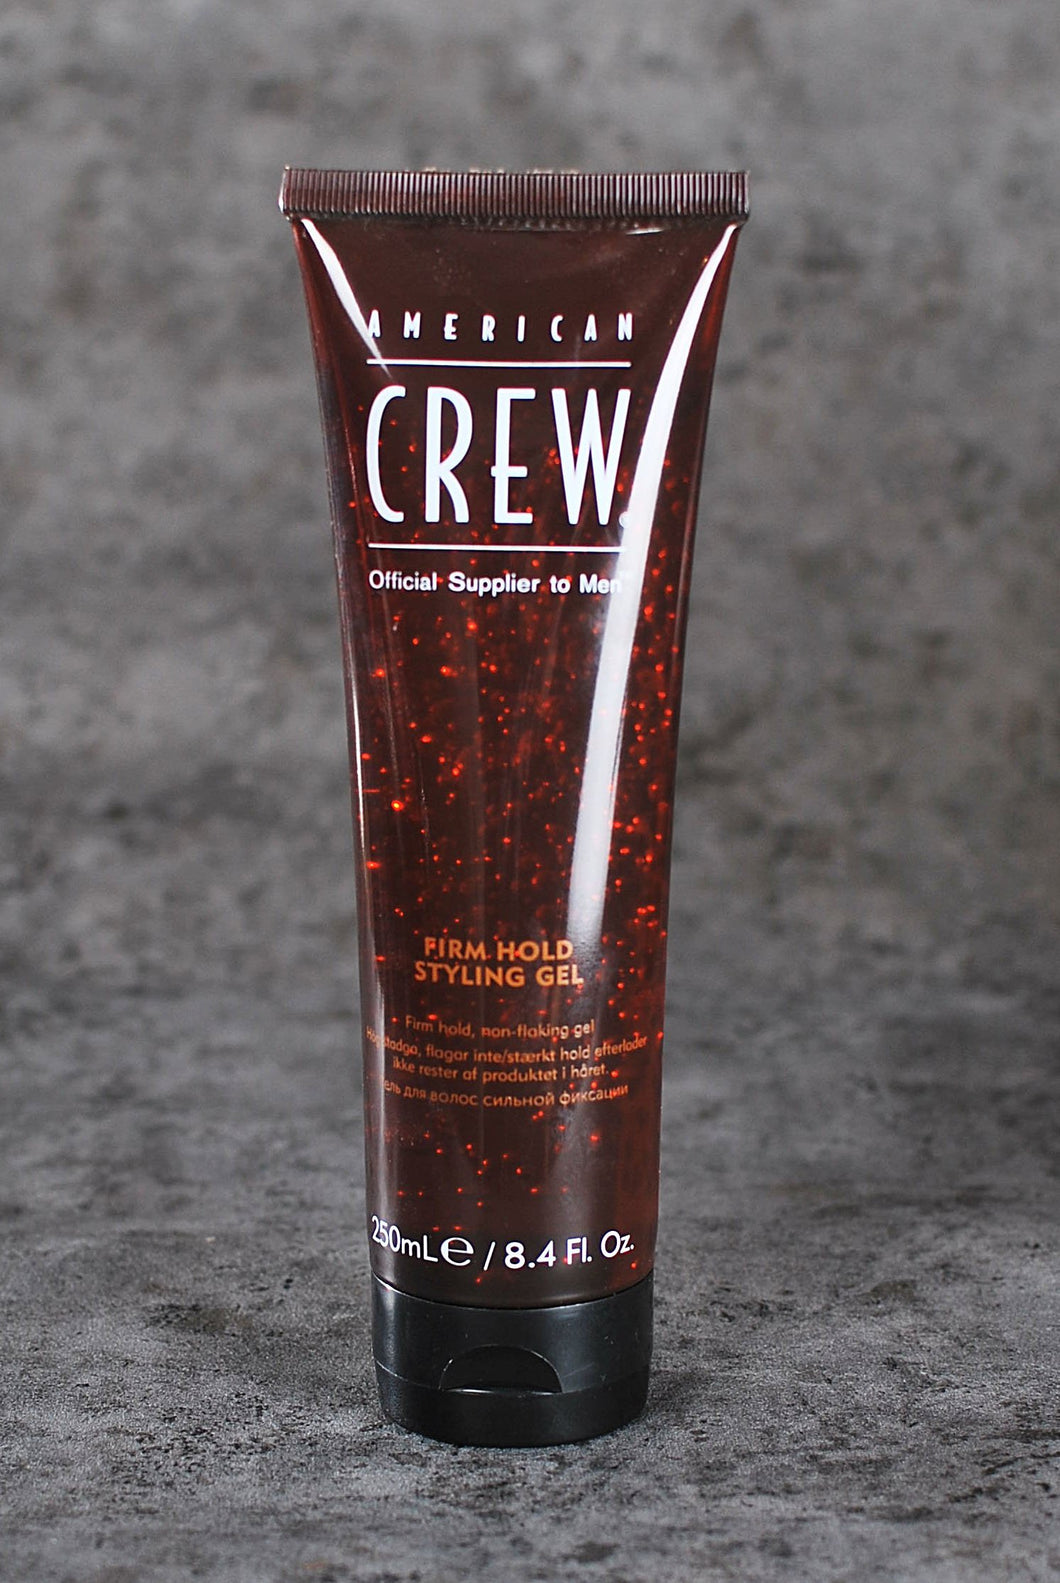 American Crew - Firm Hold Styling Gel